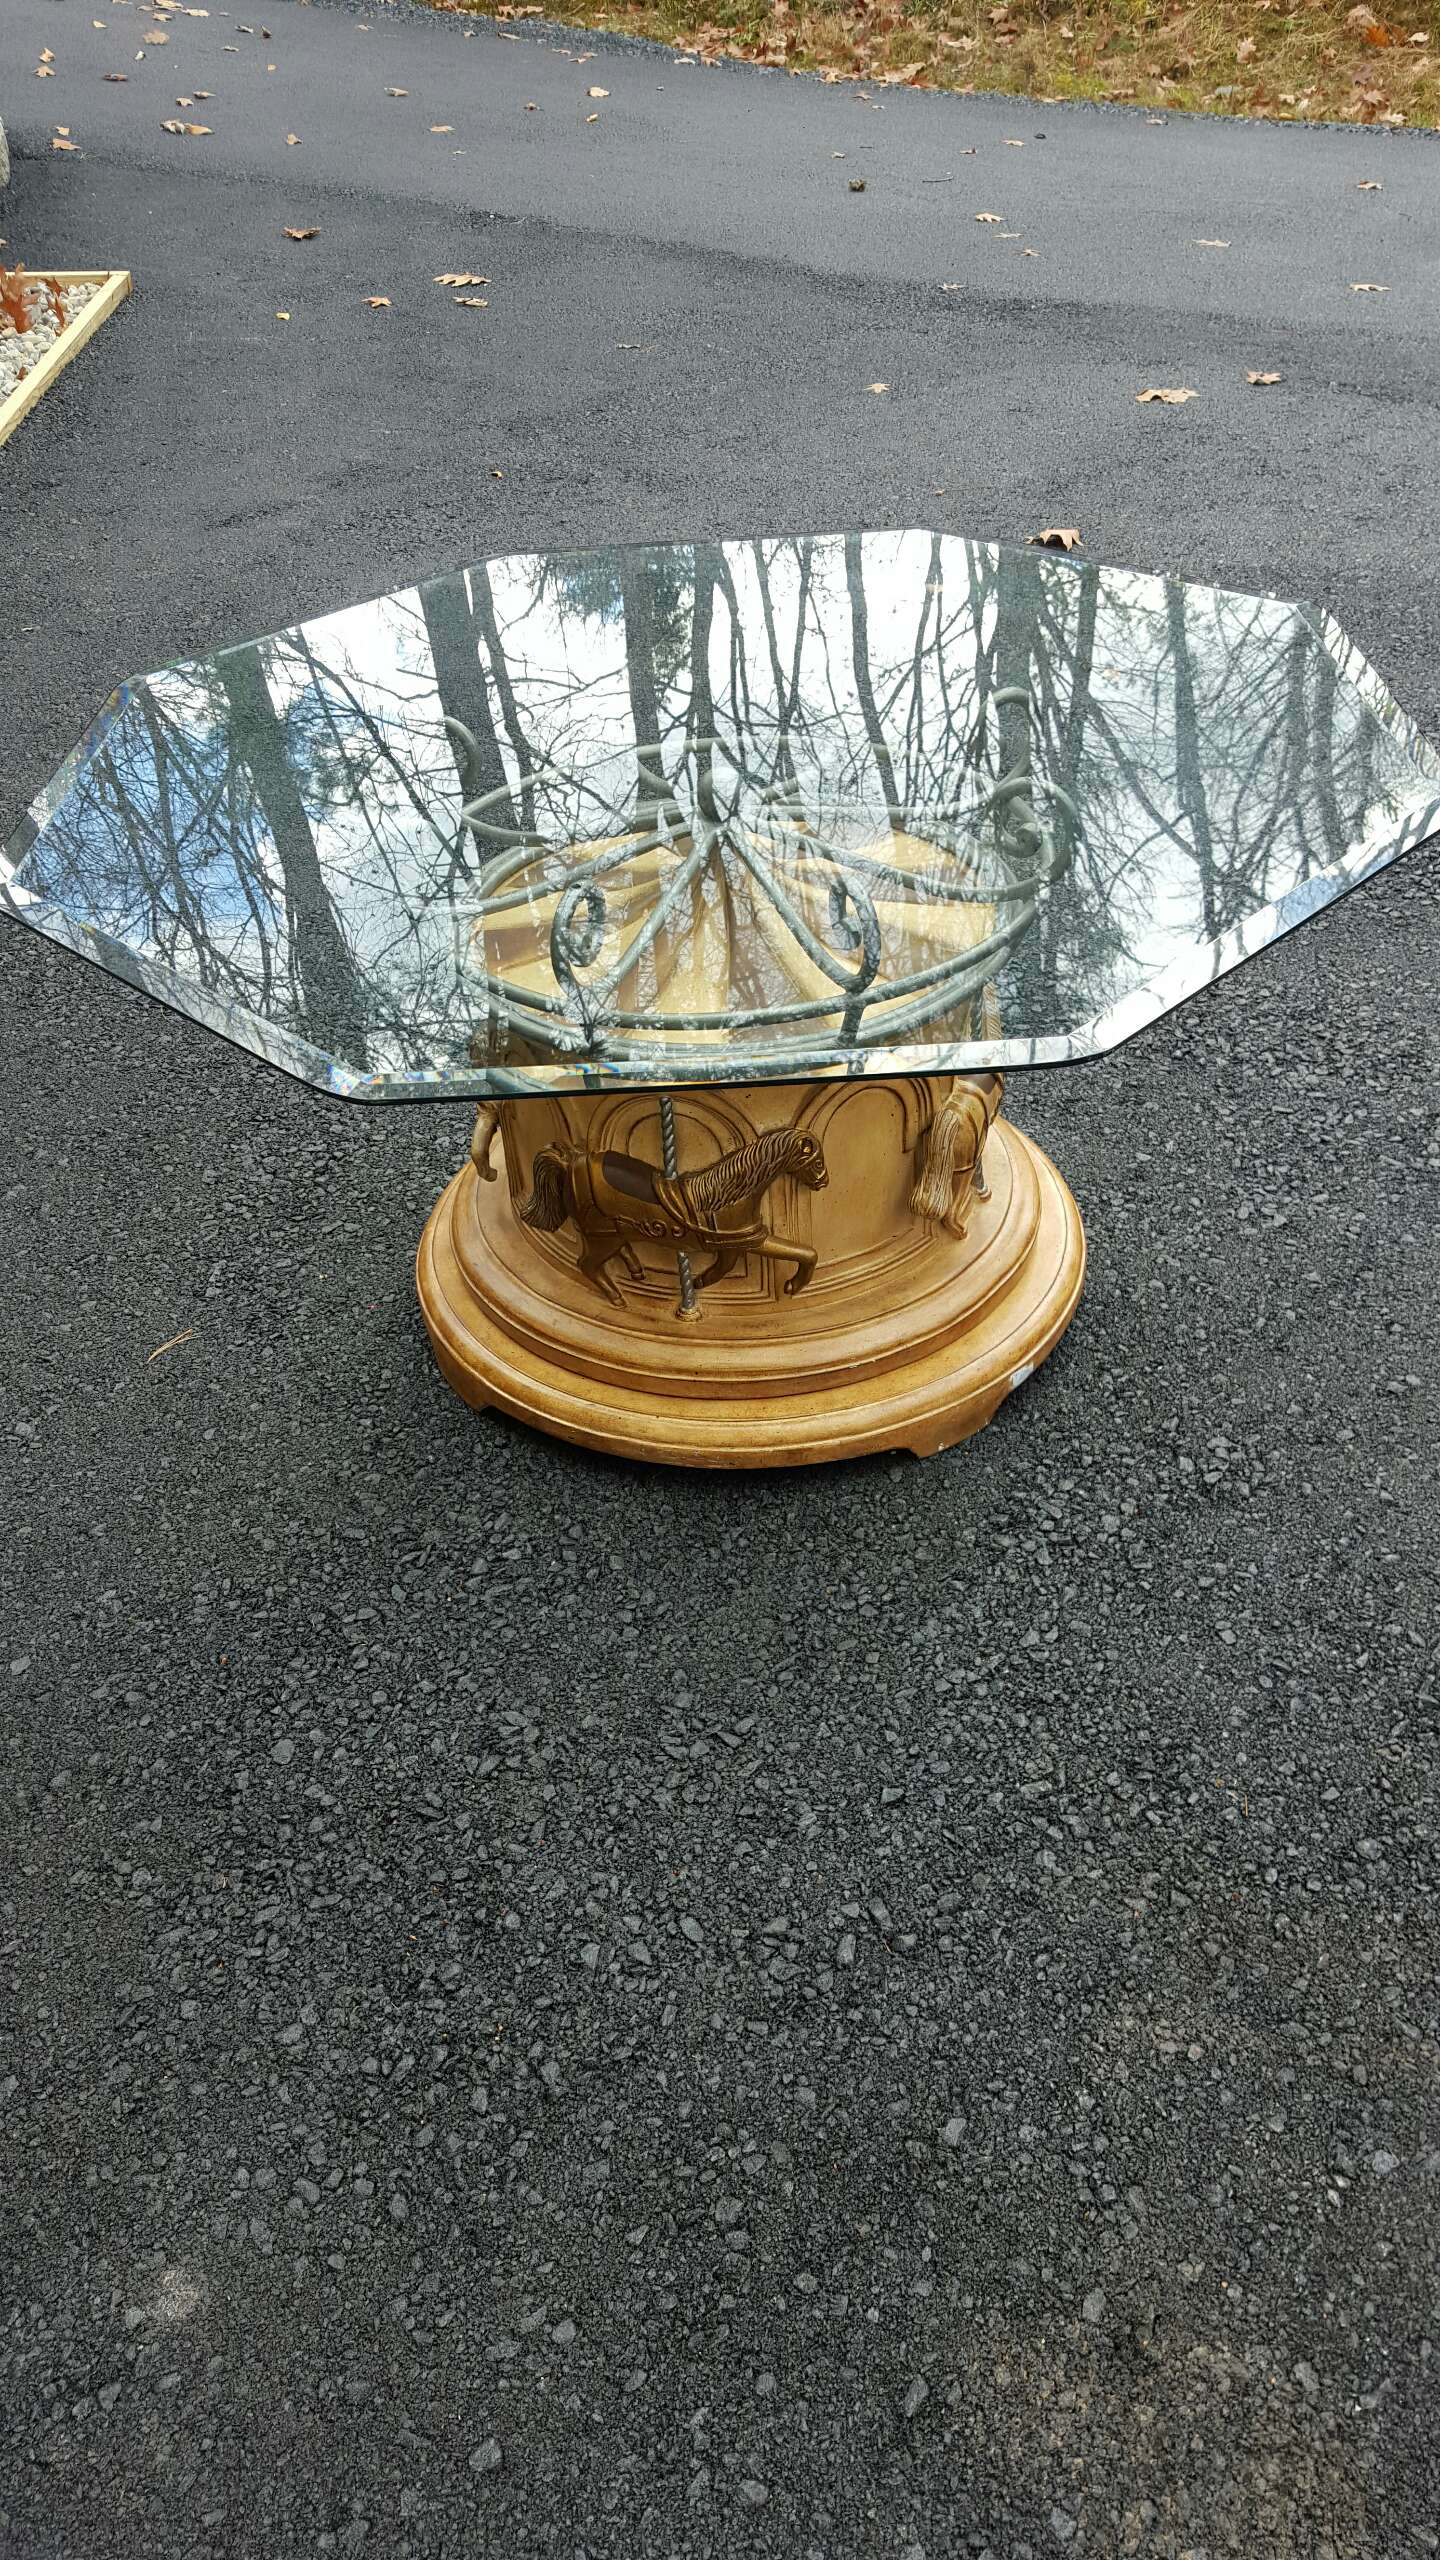 carousel coffee table w revolving horses for sale in milford, pa